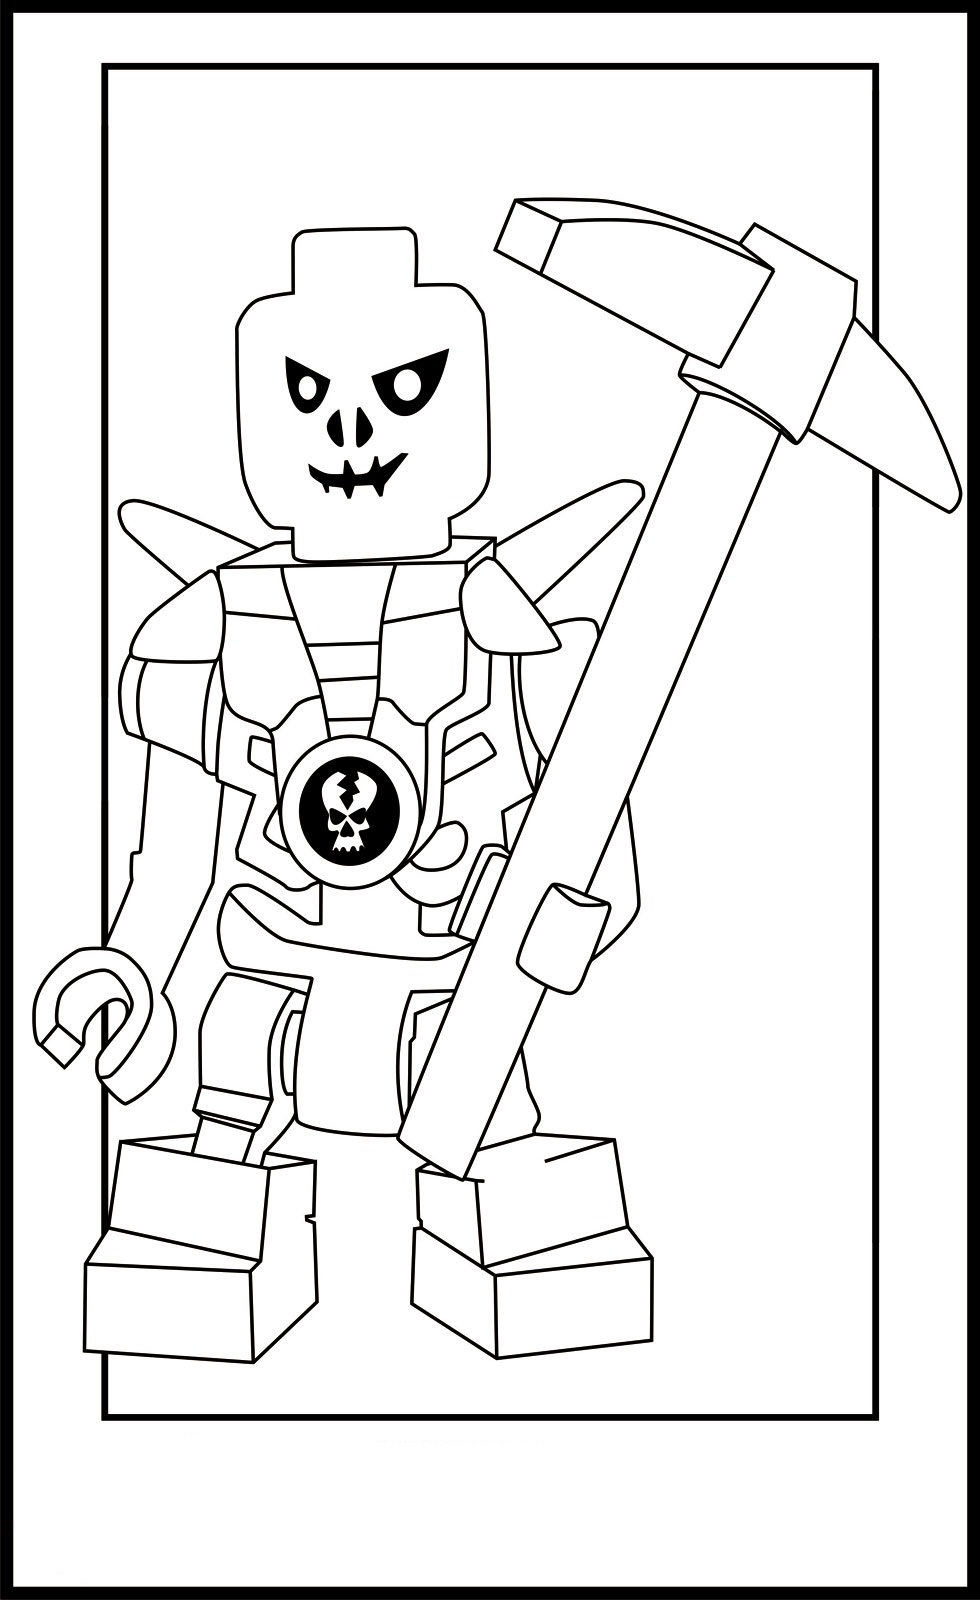 Cole ninjago coloring games online for kids - Ninjago Lego Coloring Pages